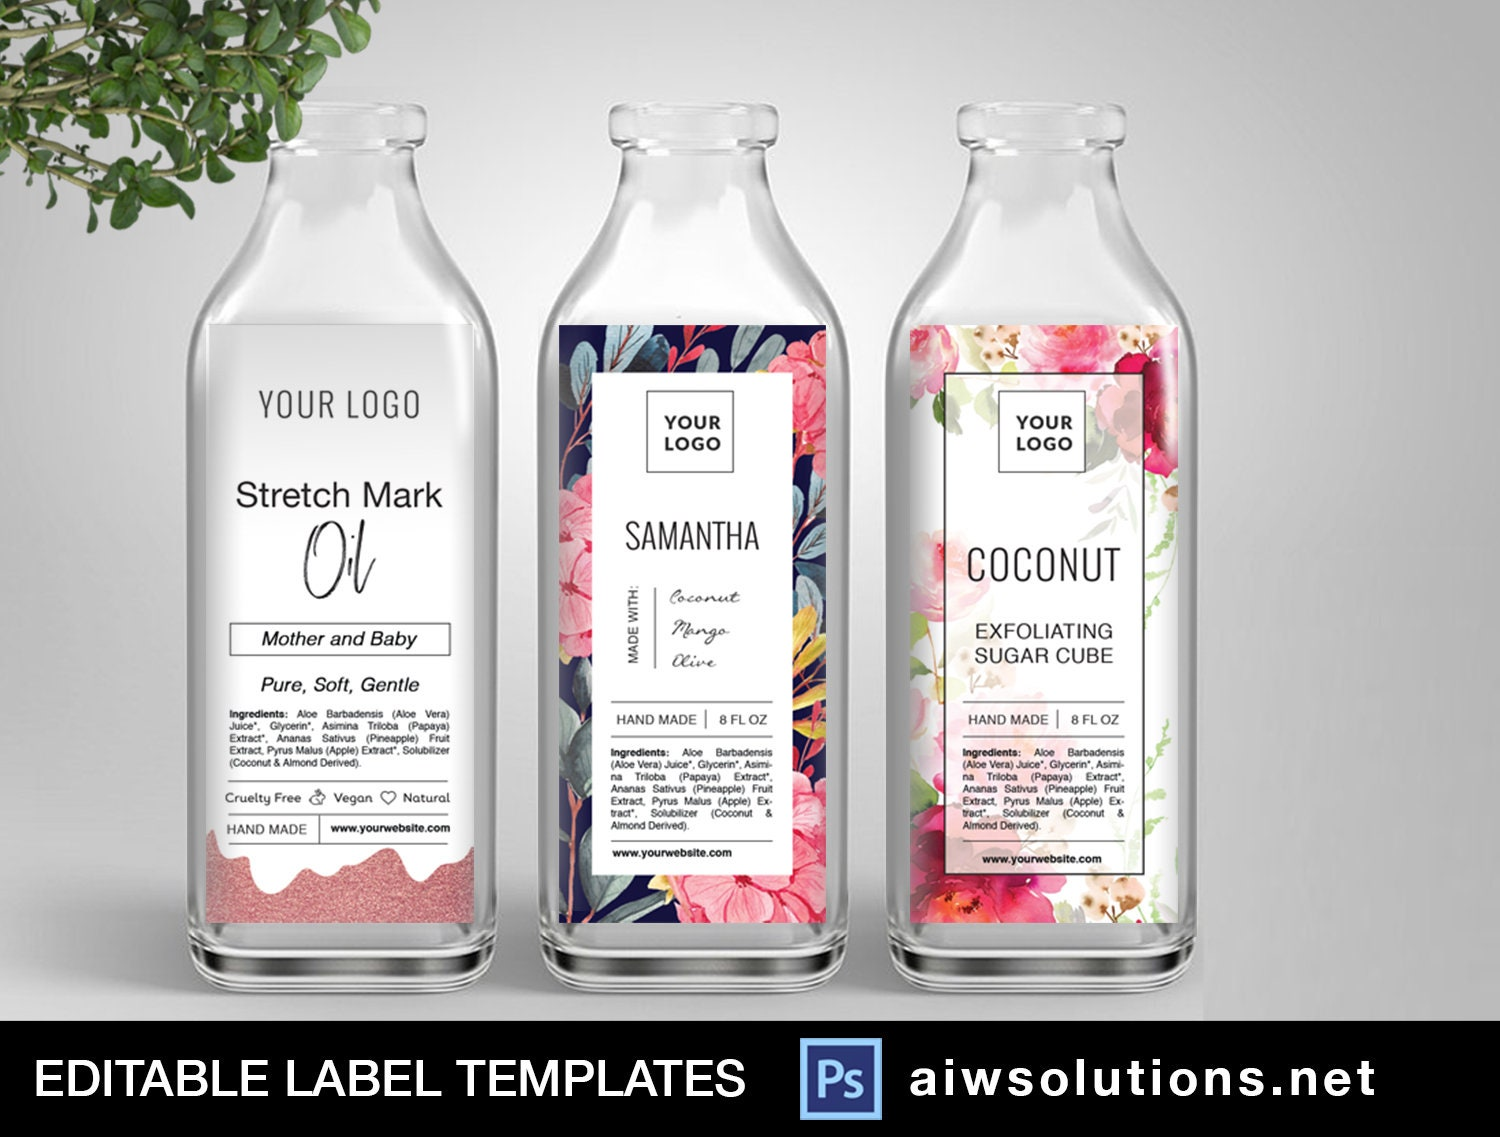 juice bottle label template, packaging label template, cosmetic label,  Fragrance Skin Care label,candle label template, sticker template